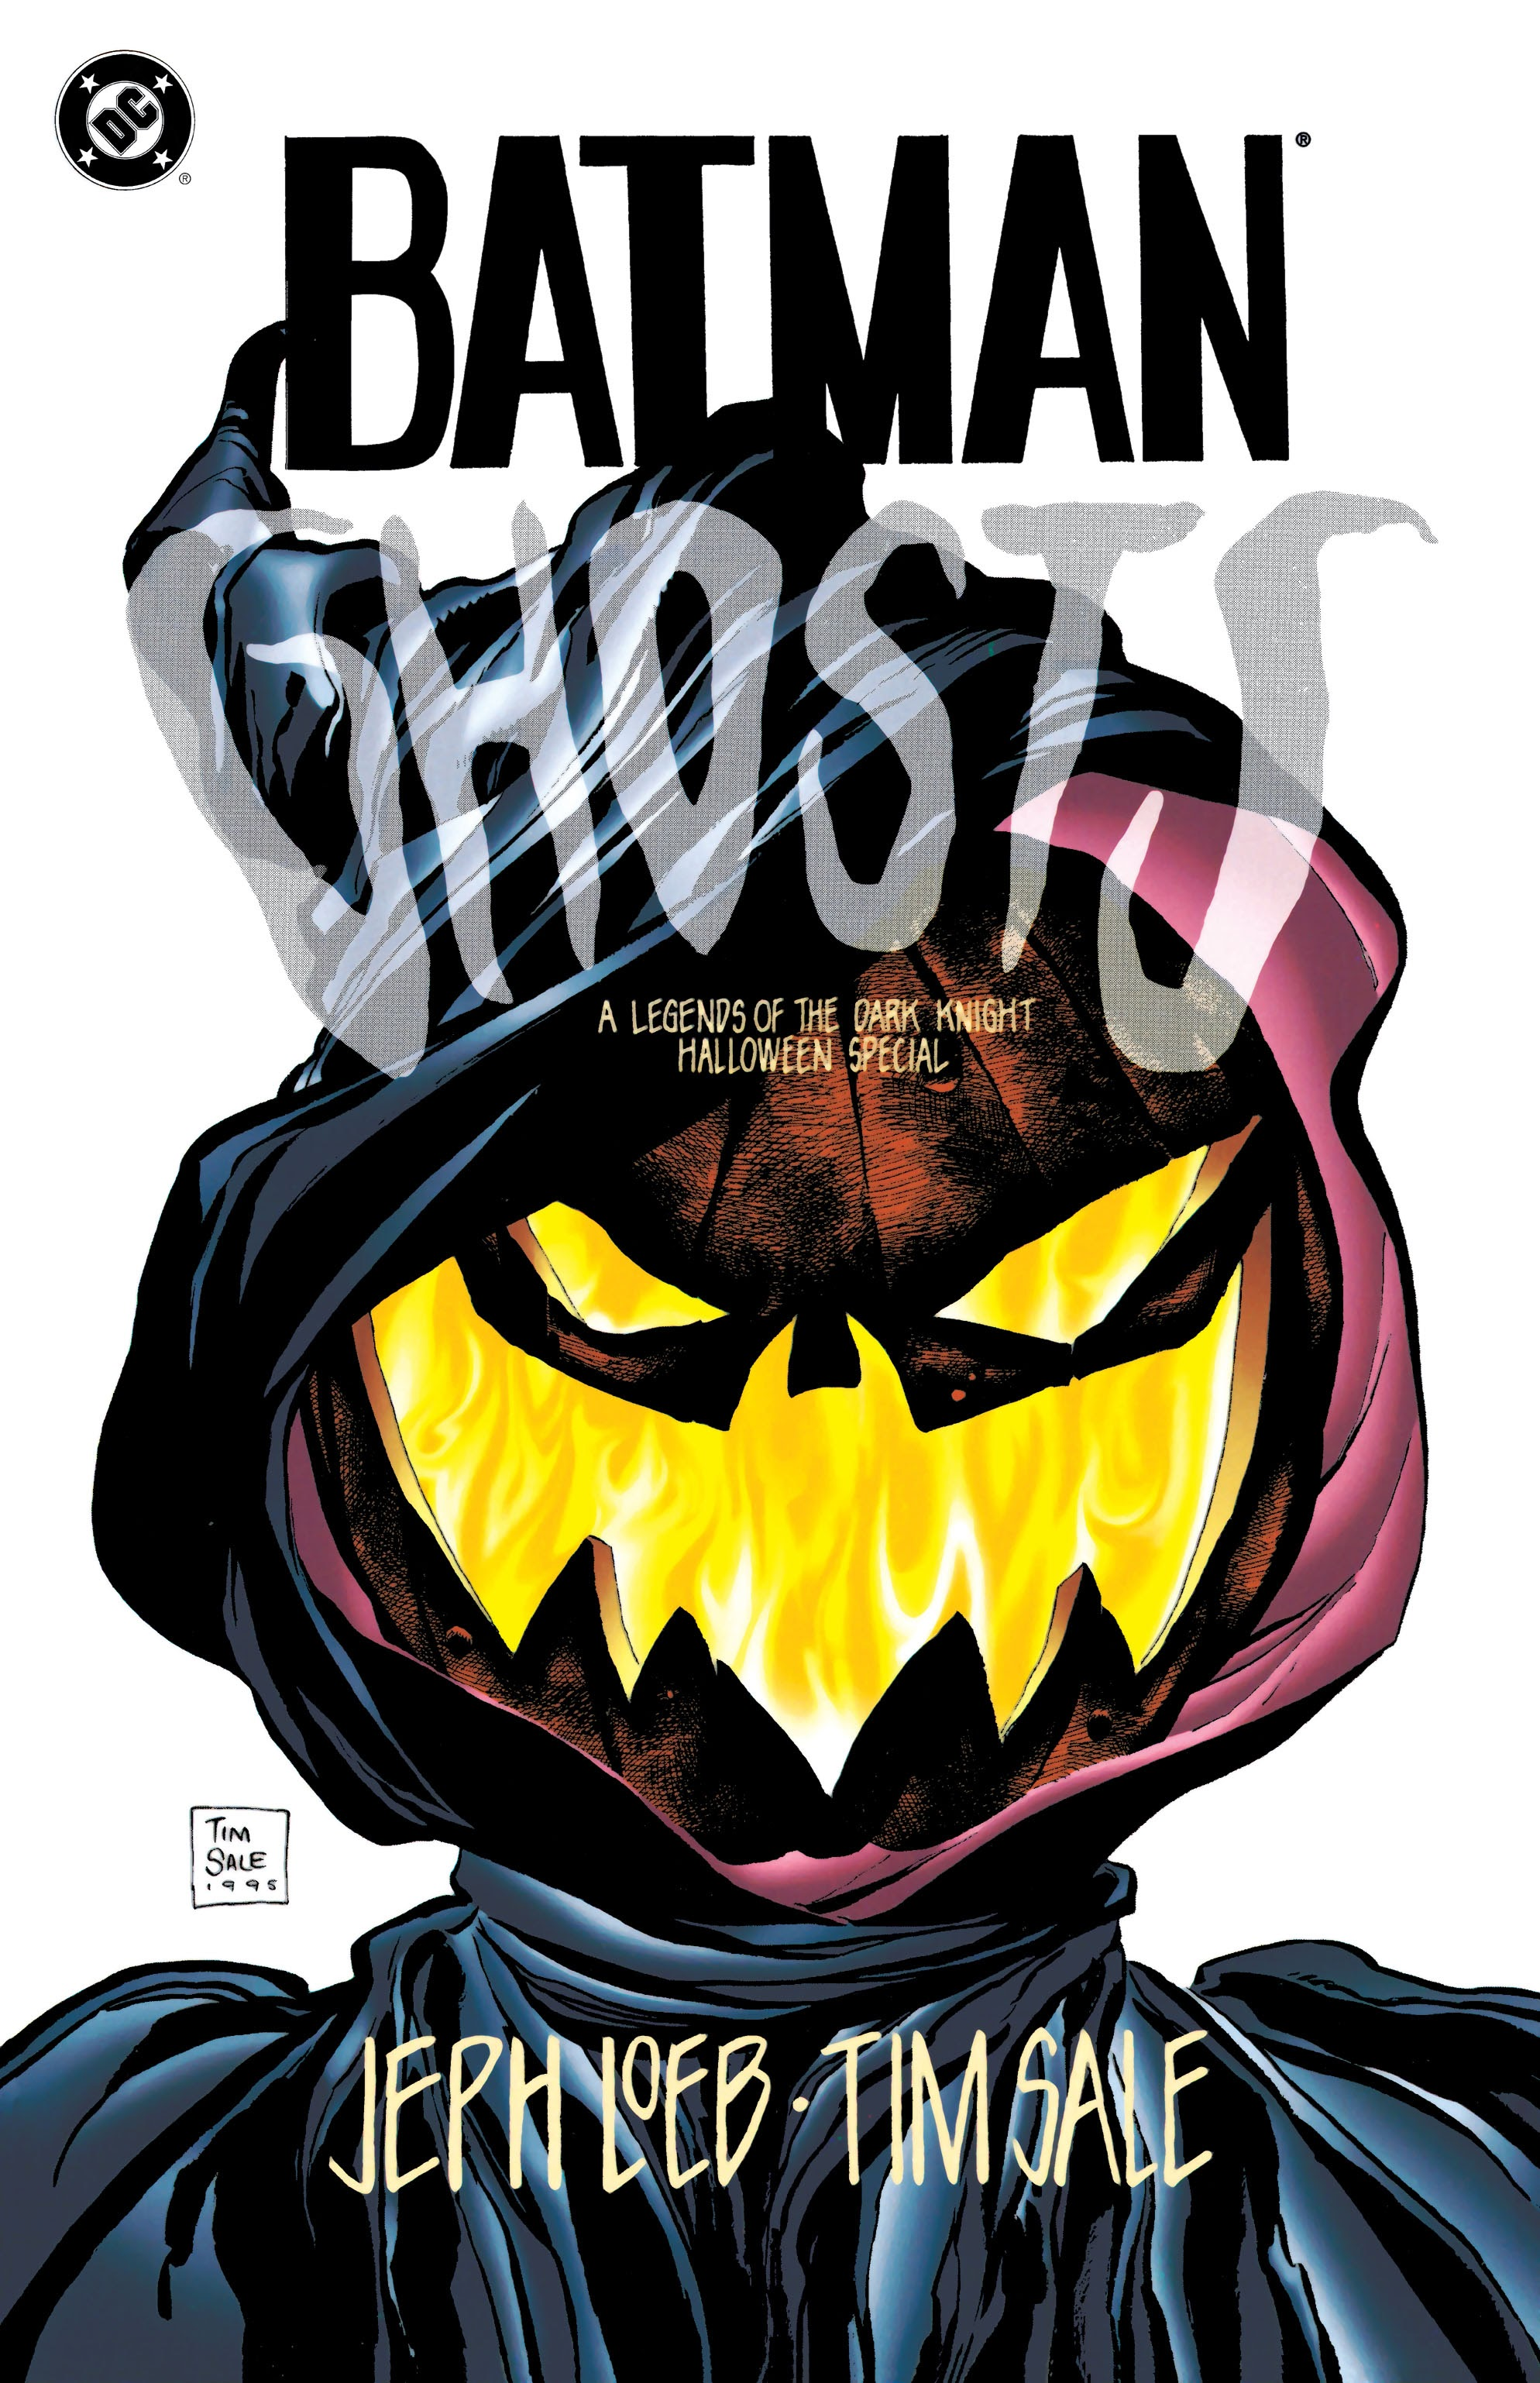 Batman: Legends of the Dark Knight Halloween Special Ghosts Page 1